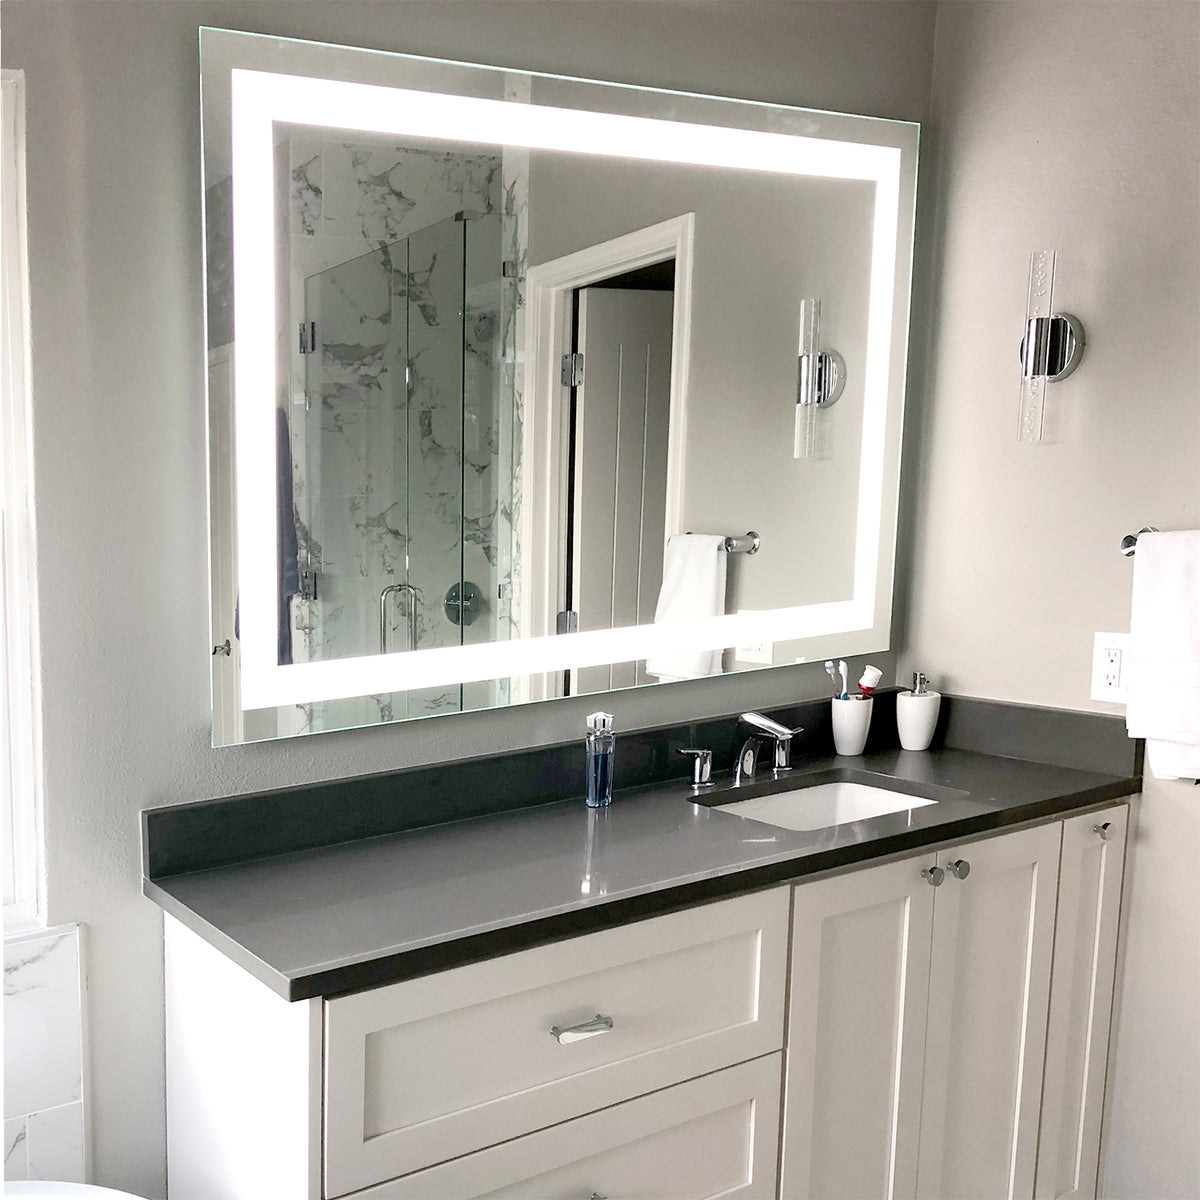 Picture of: Front Lighted Led Bathroom Vanity Mirror 48 X 32 Rectangular Mirrors Marble